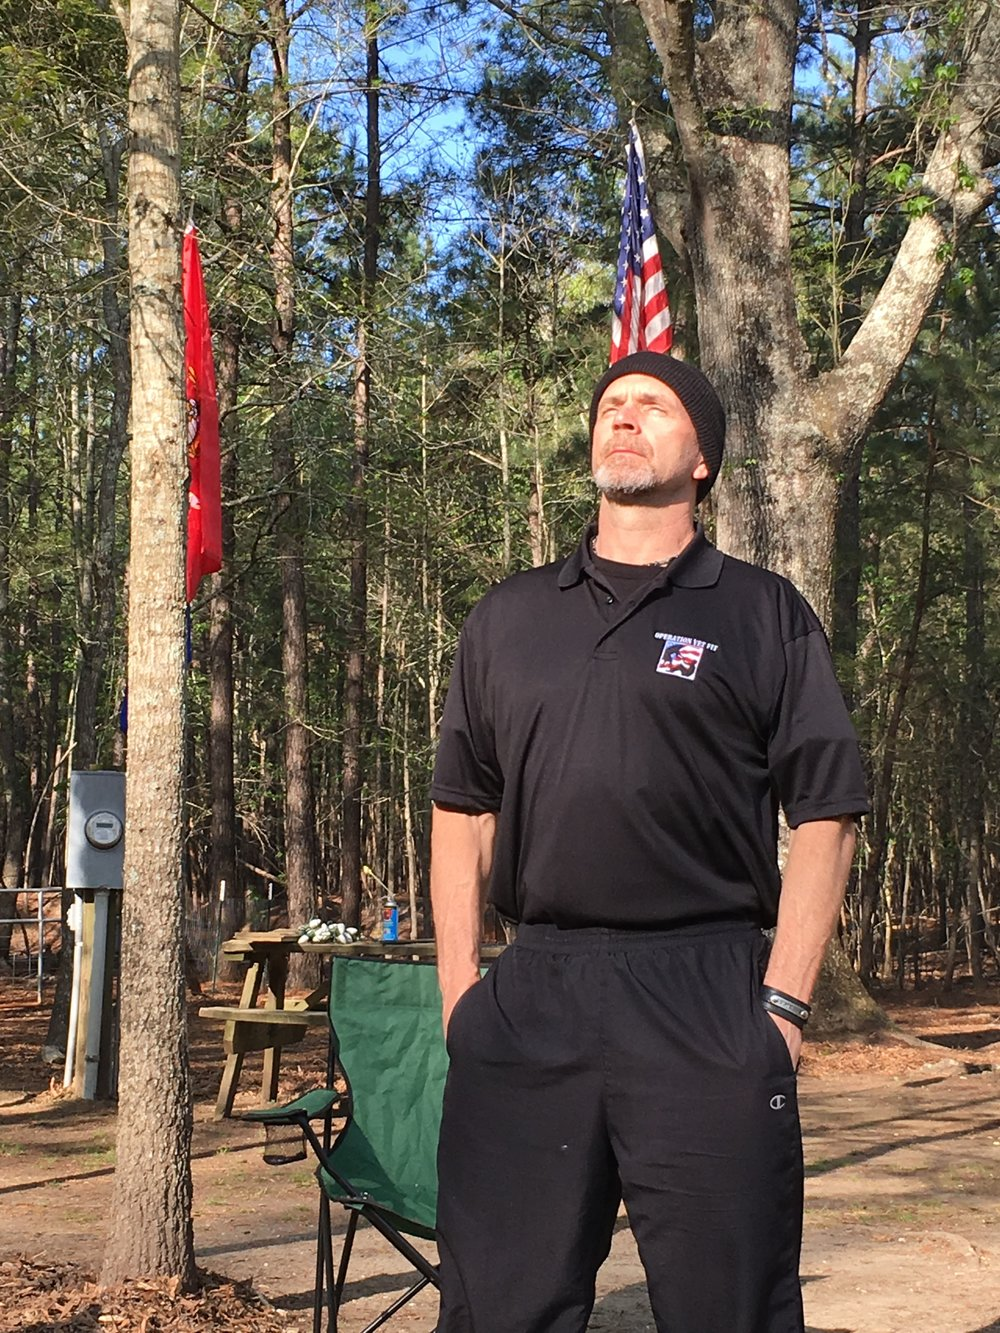 Joe Schirmer, US Army veteran enjoys some sunshine during our April 2018 Camaraderie event at the ranch